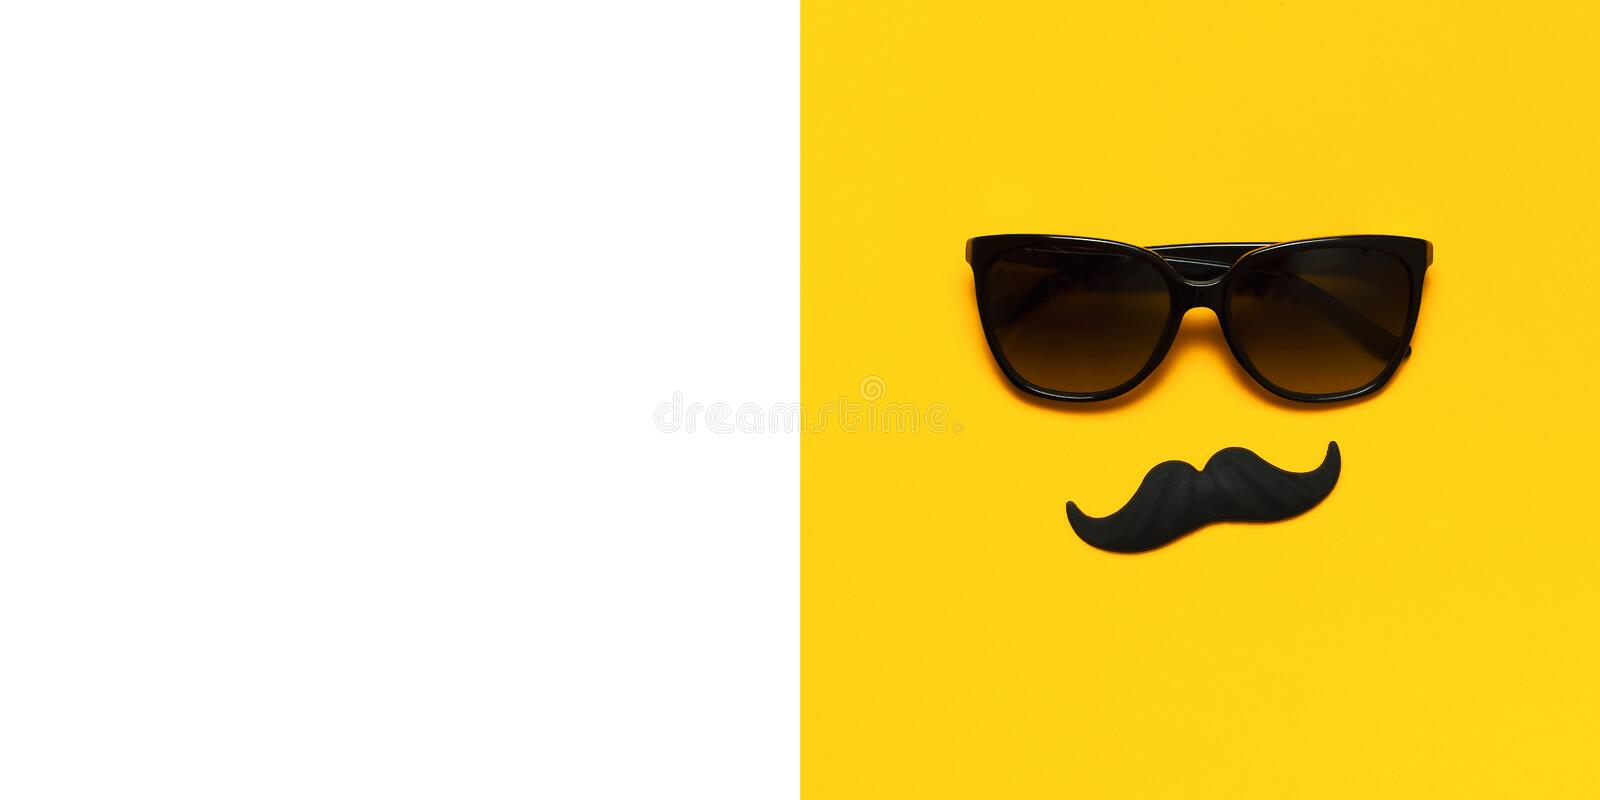 Creative party decoration concept. Black mustache, sunglasses, props for photo booths, carnival parties on yellow background top royalty free stock photography